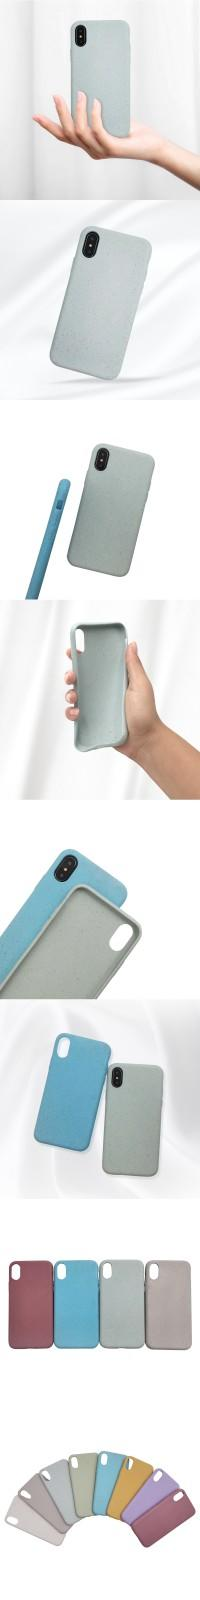 coated iphone case supplier manufacturer for commercial